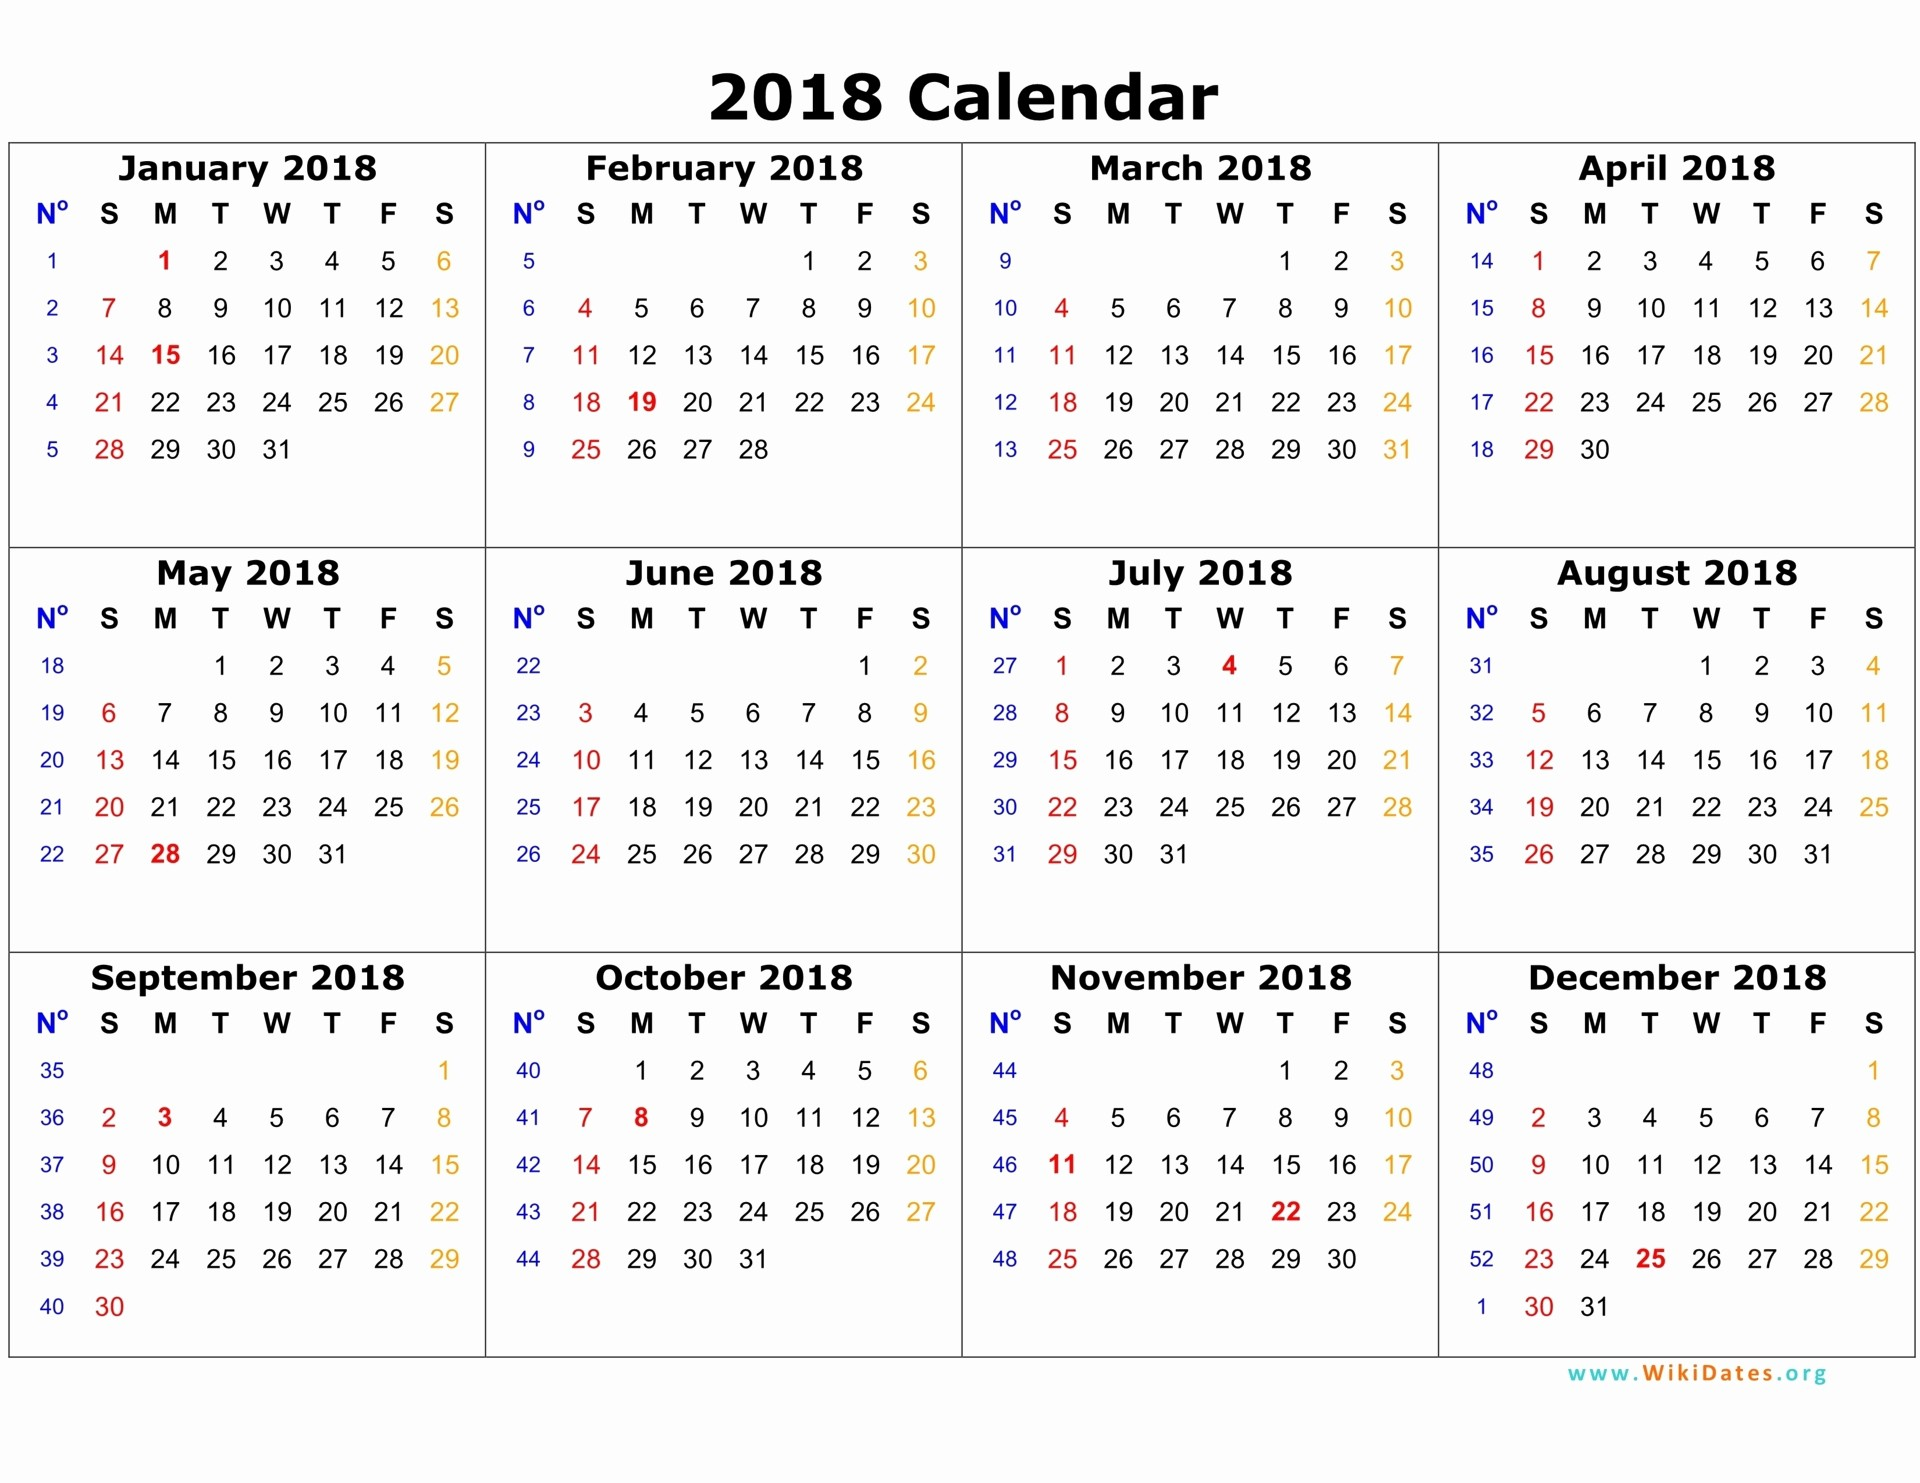 2018 calendar printable with holidays